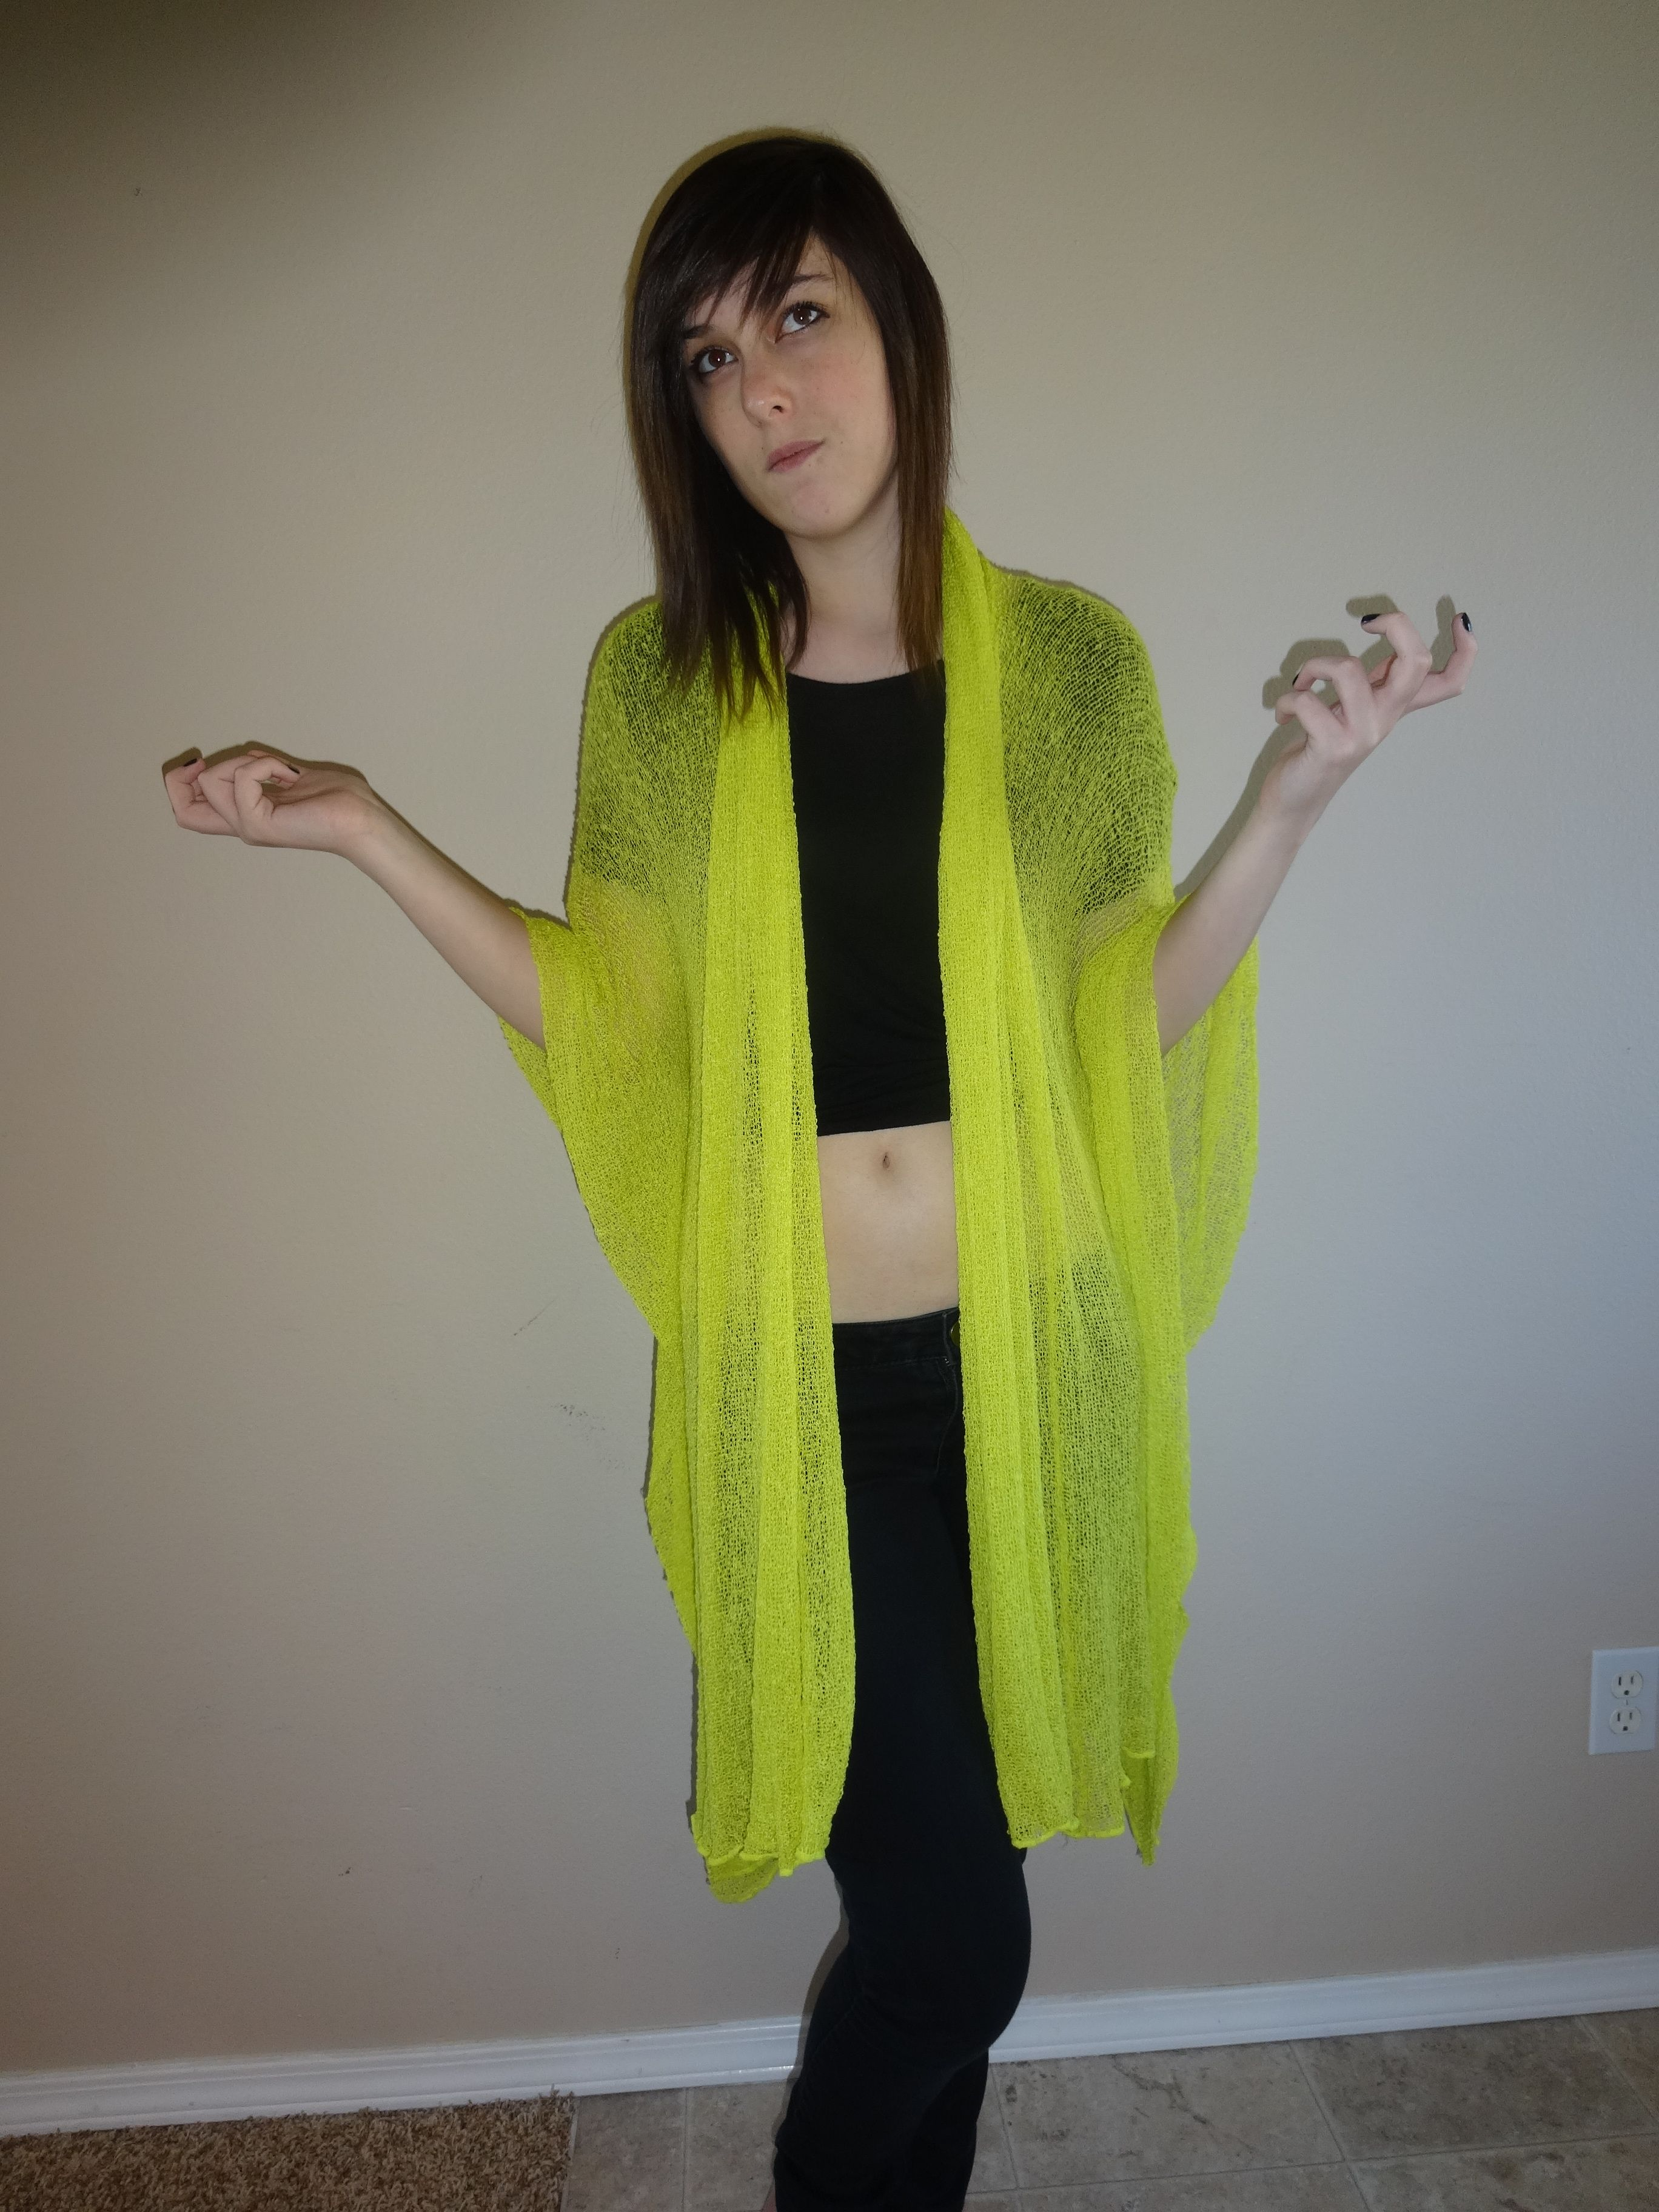 Bali Apricot Convertible Mesh Cardigan Wrap One Size Fits All Handmade Can be Worn at Least 12 Different Ways